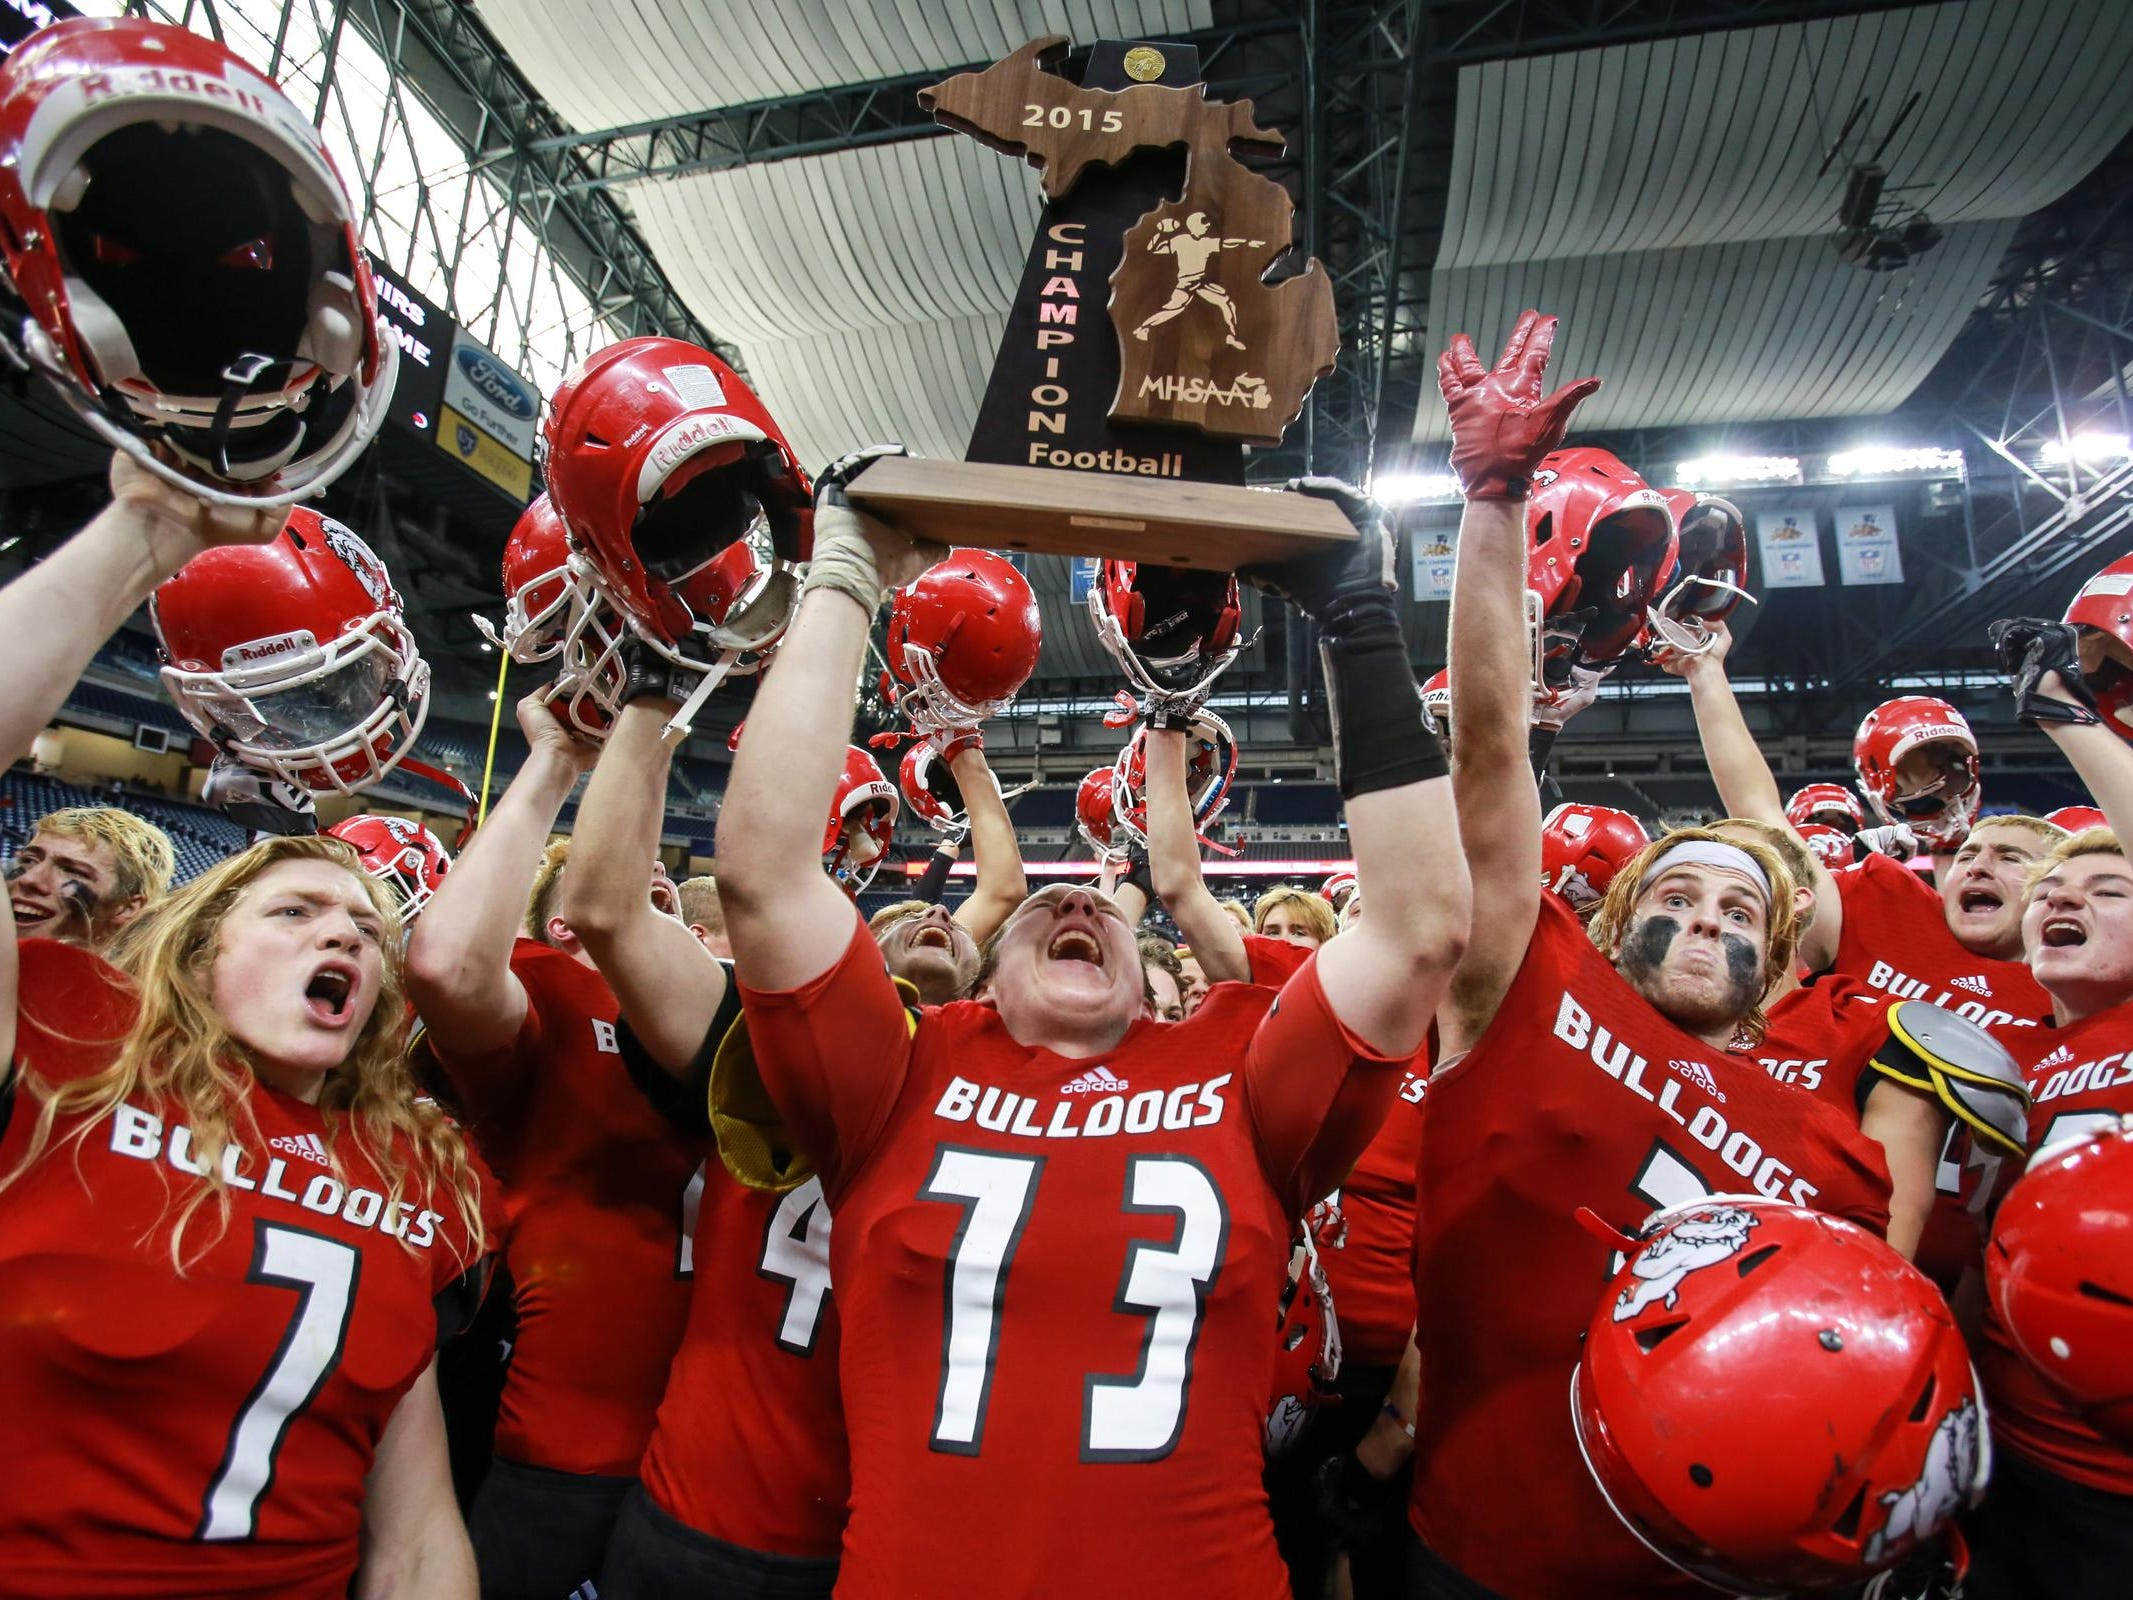 Romeo Christopher Zanke lifts the MHSAA Football Champion trophy in the air surrounded by his teammates, after defeating Detroit Cass Tech in the Michigan High School Athletic Association football Division 1 finals at Ford Field in Detroit on Saturday, Nov. 28, 2015.